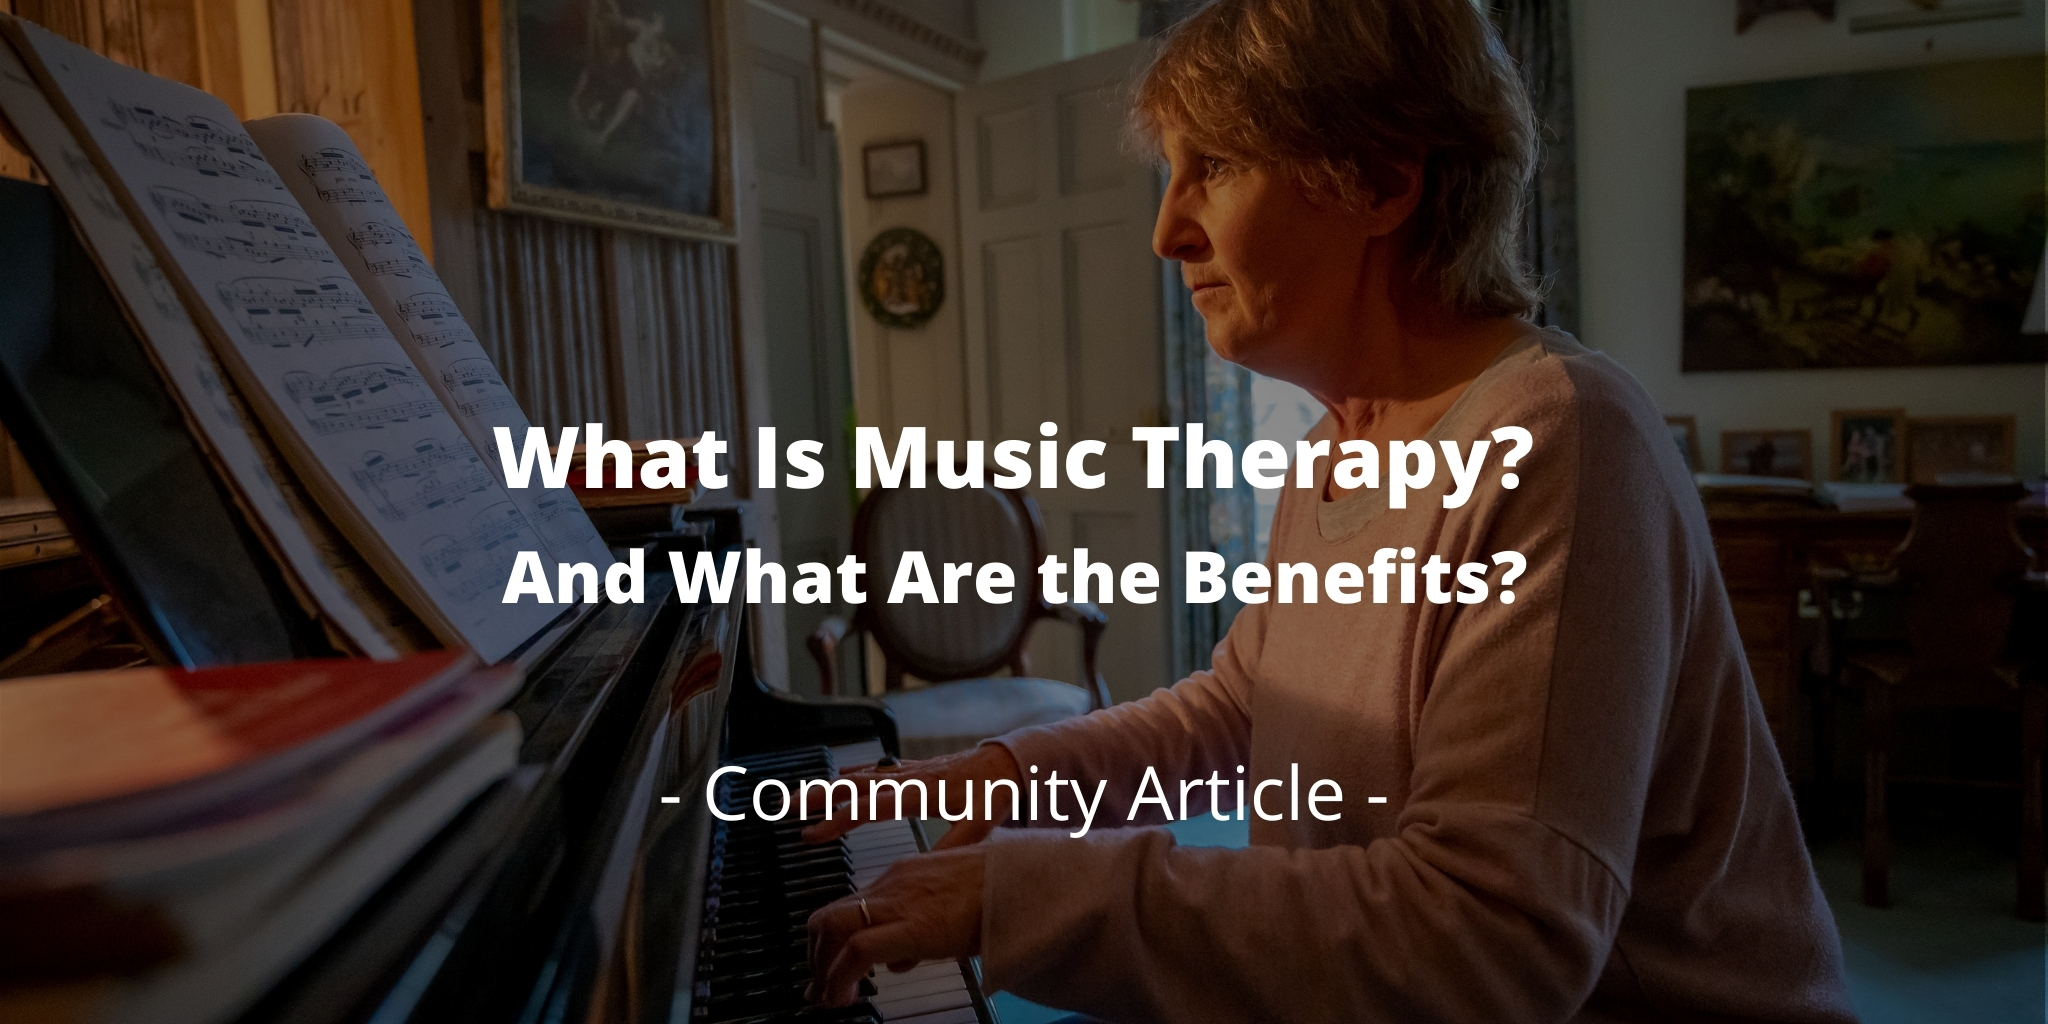 What Is Music Therapy? And What Are the Benefits?